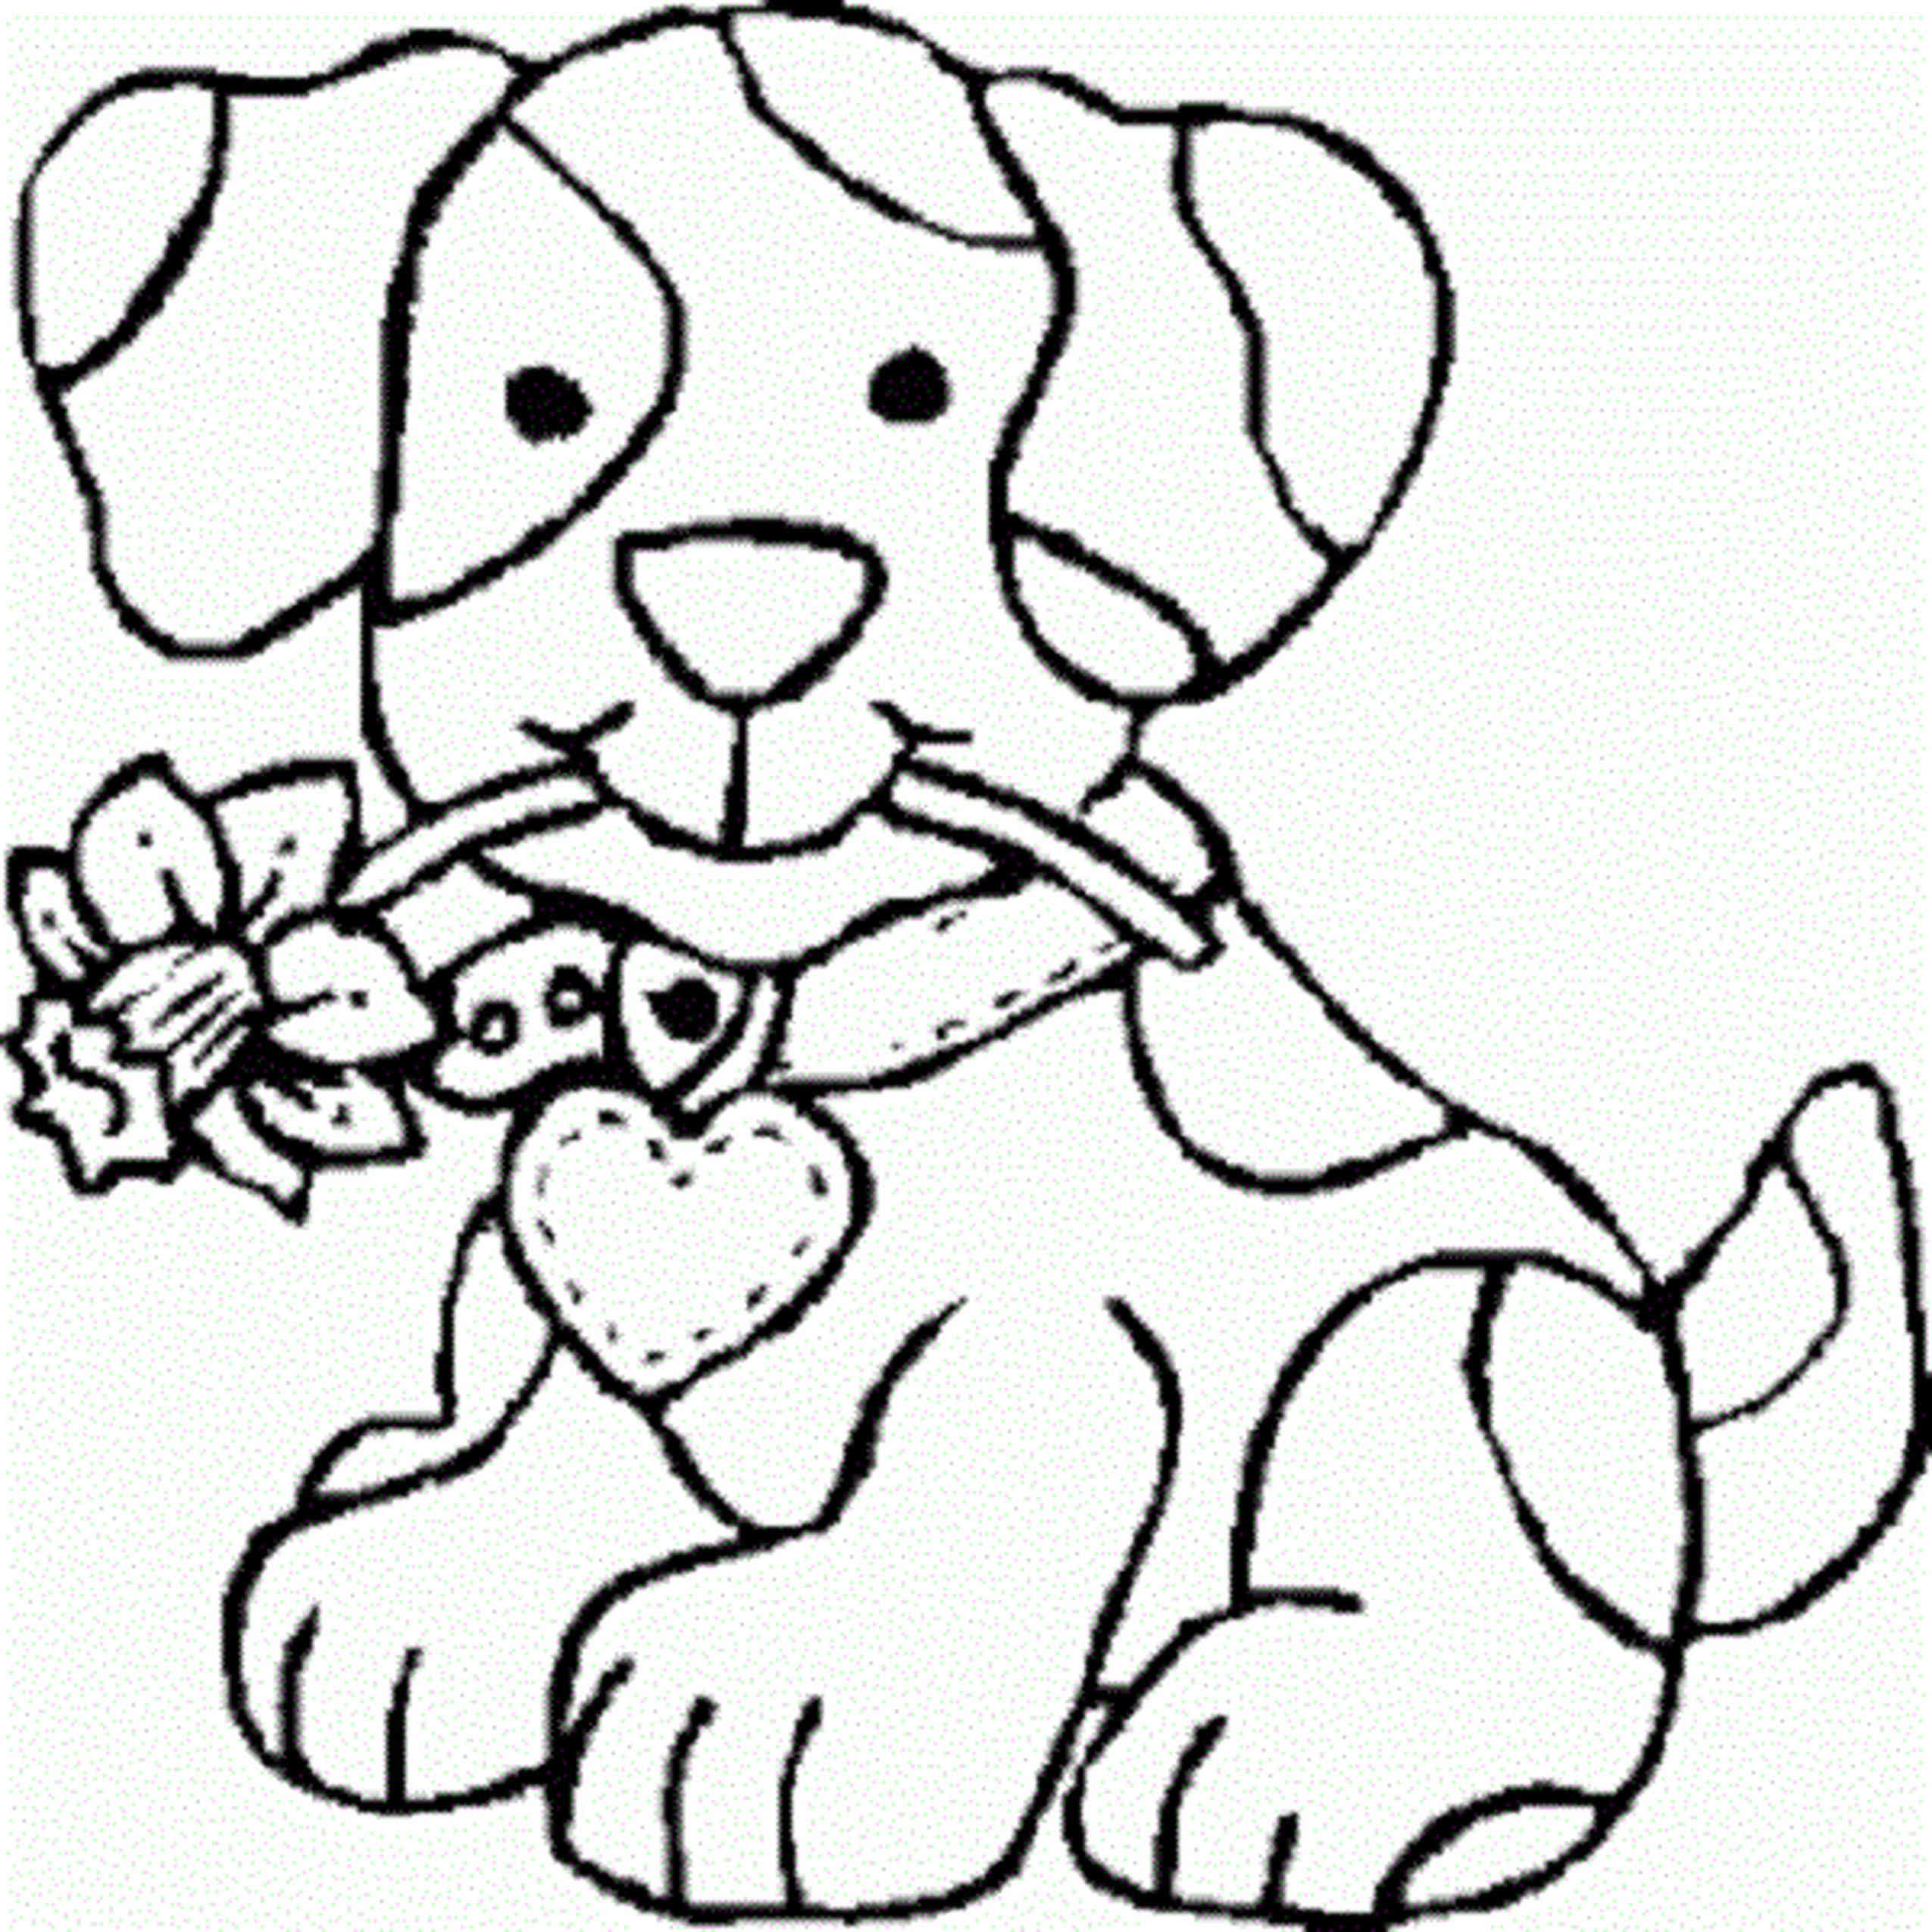 2550x2550 Coloring Pages Girls Rallytv Printable Coloring Pages New Year